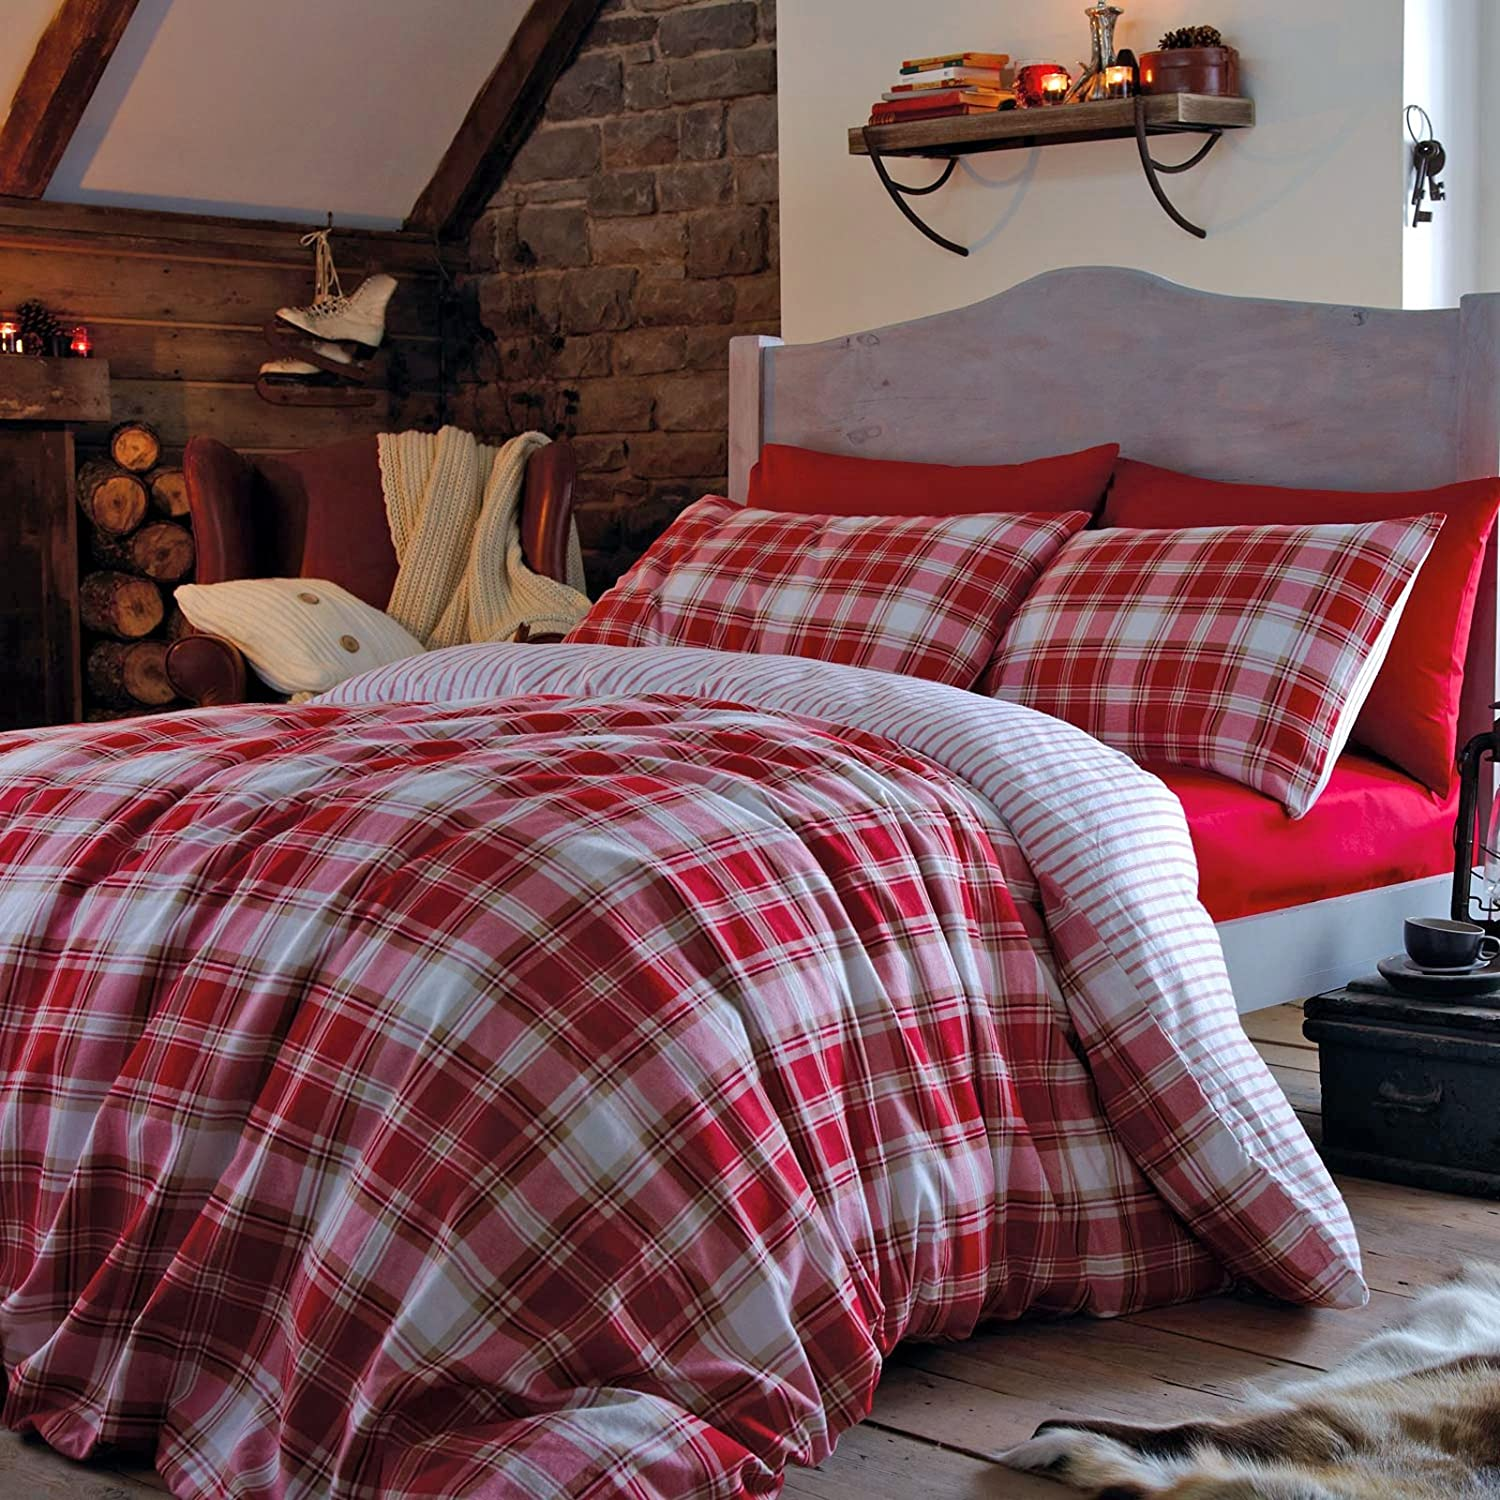 size bed ideas and cover fantastic duvet decorating queen comforter red plaid set black lostcoastshuttle